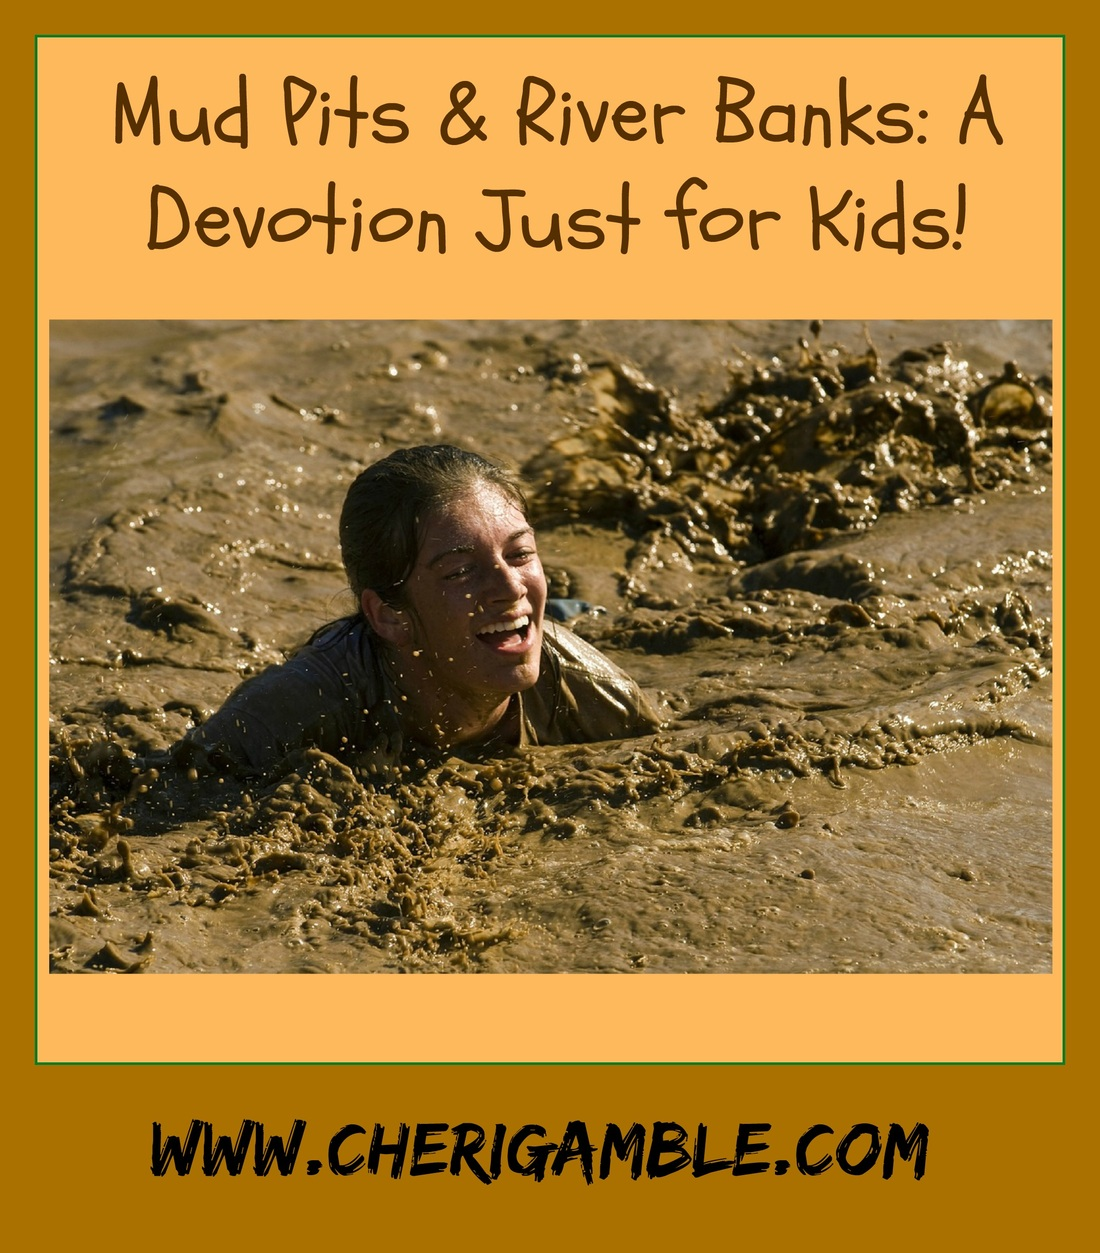 Mud Pits and River Banks: A Devotion Just for Kids